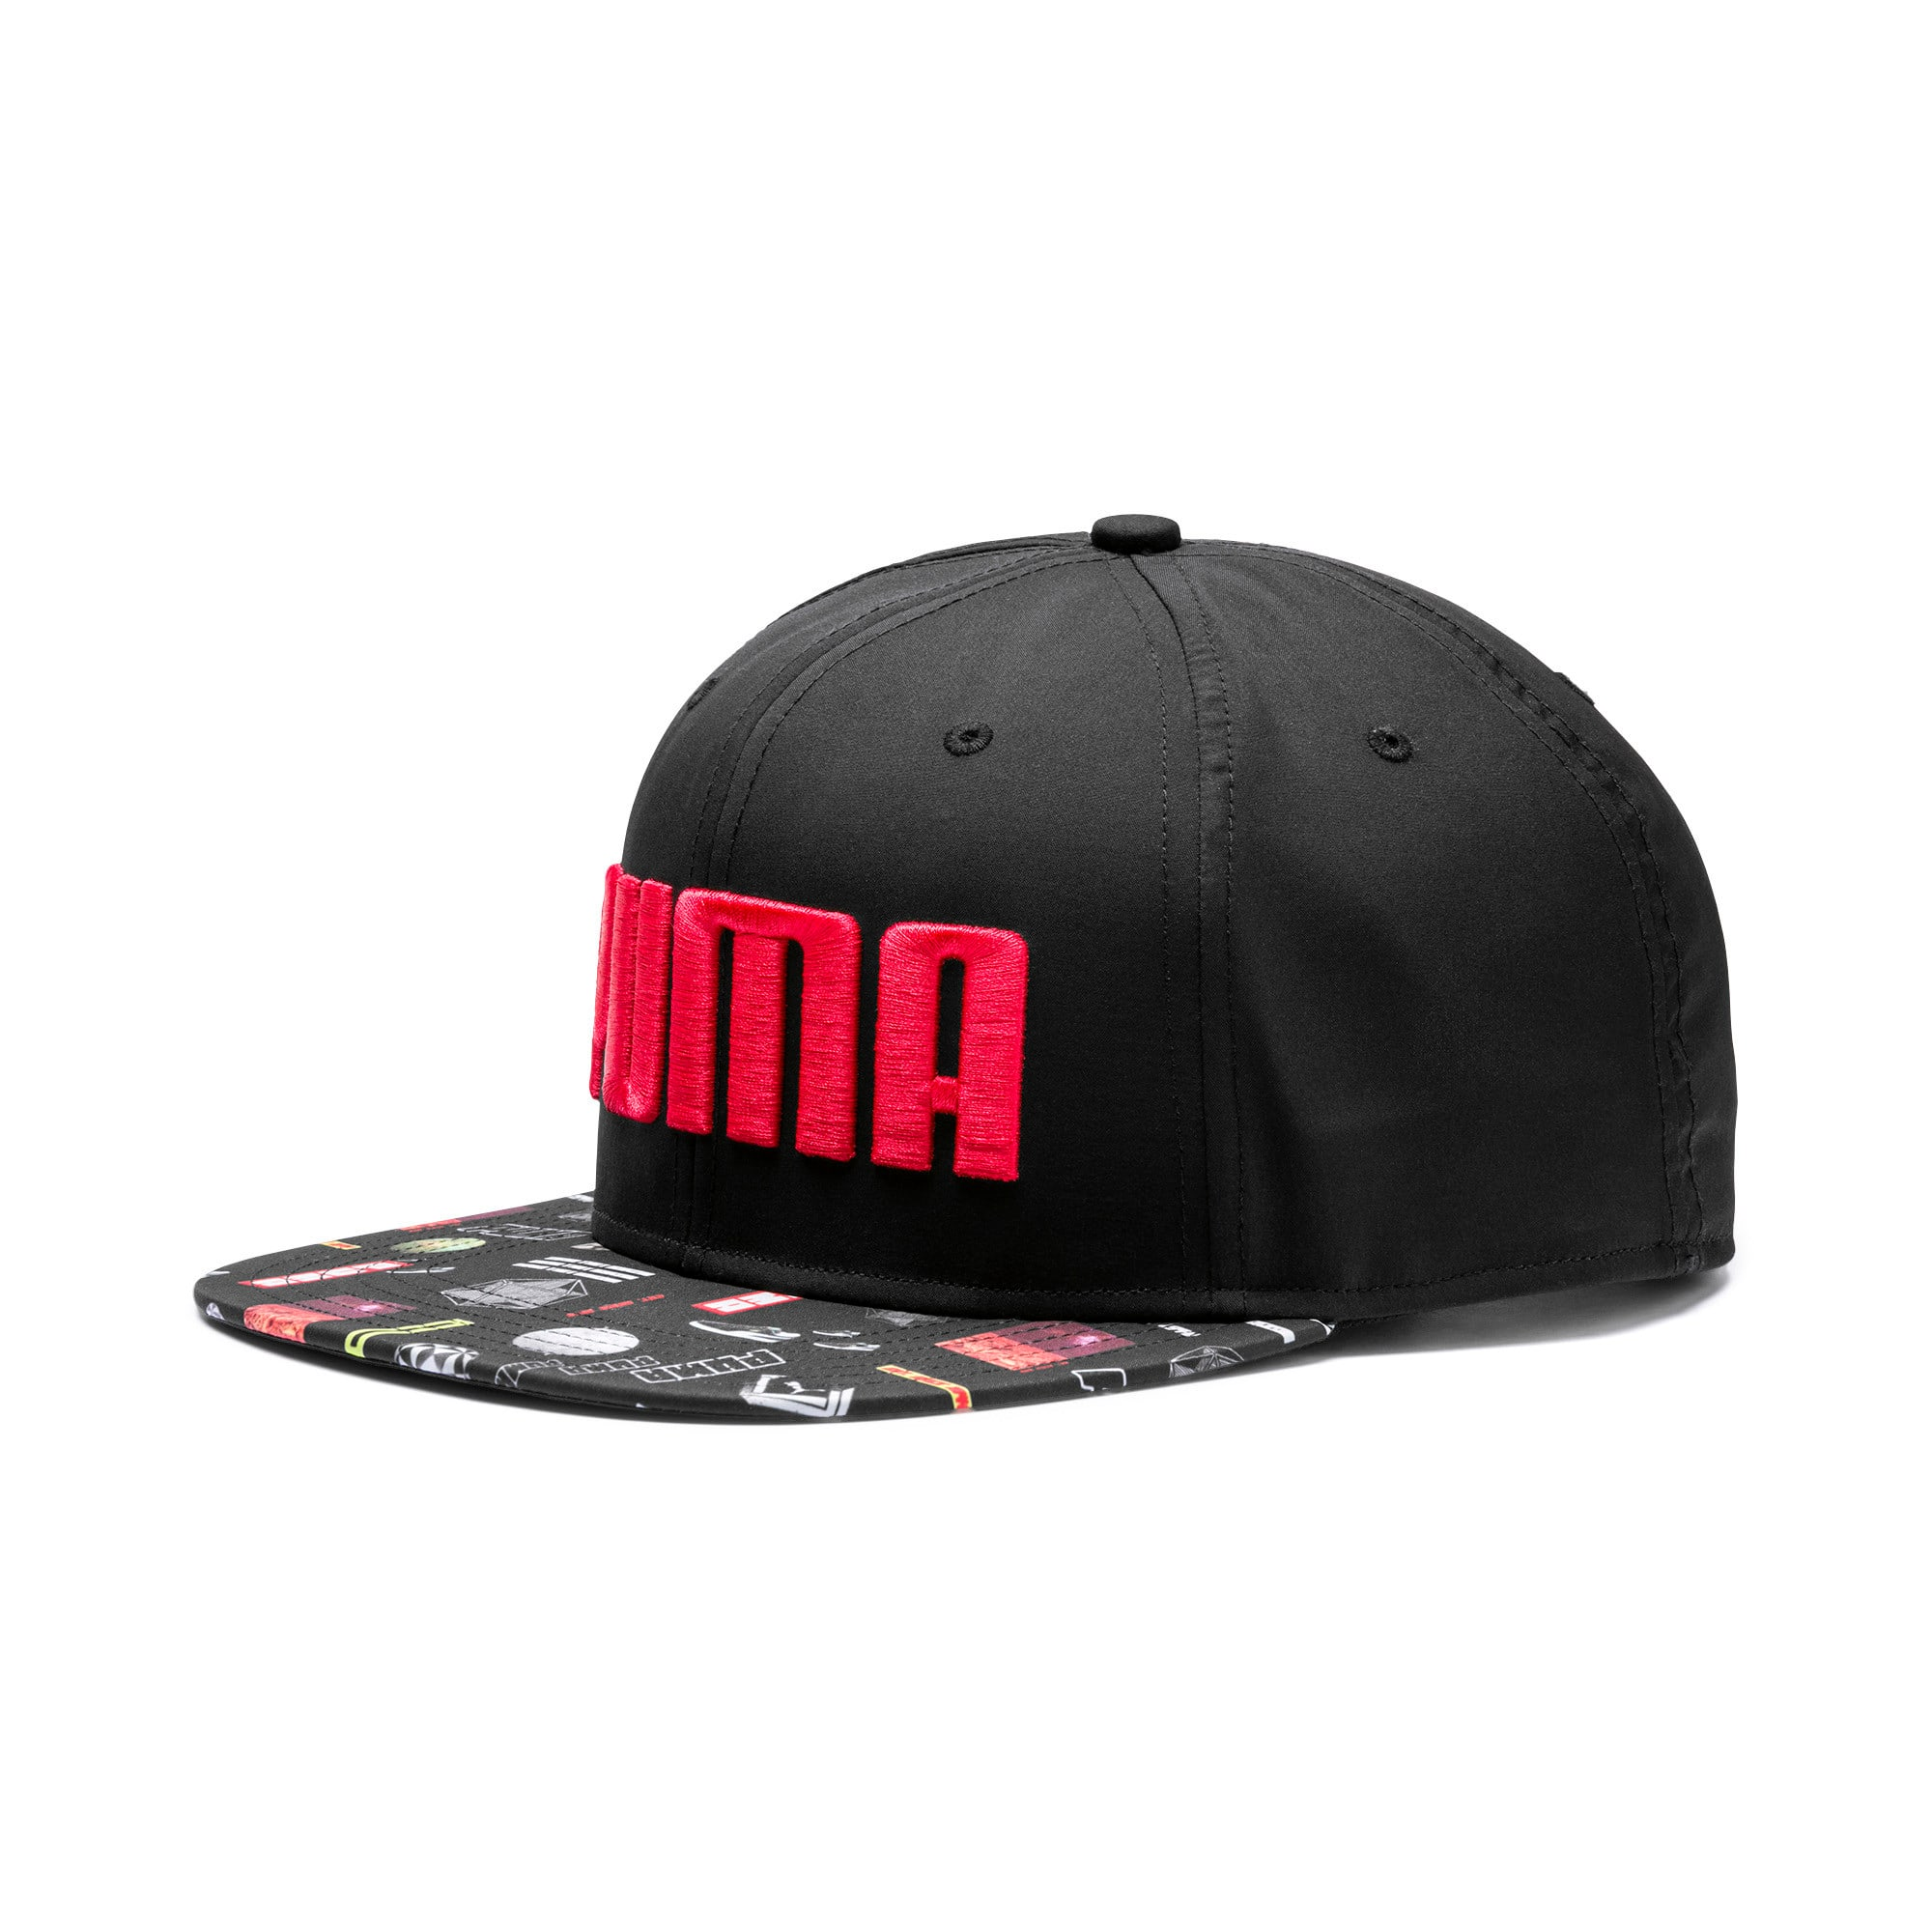 Thumbnail 1 of Flatbrim Cap, Puma Black-Graphic, medium